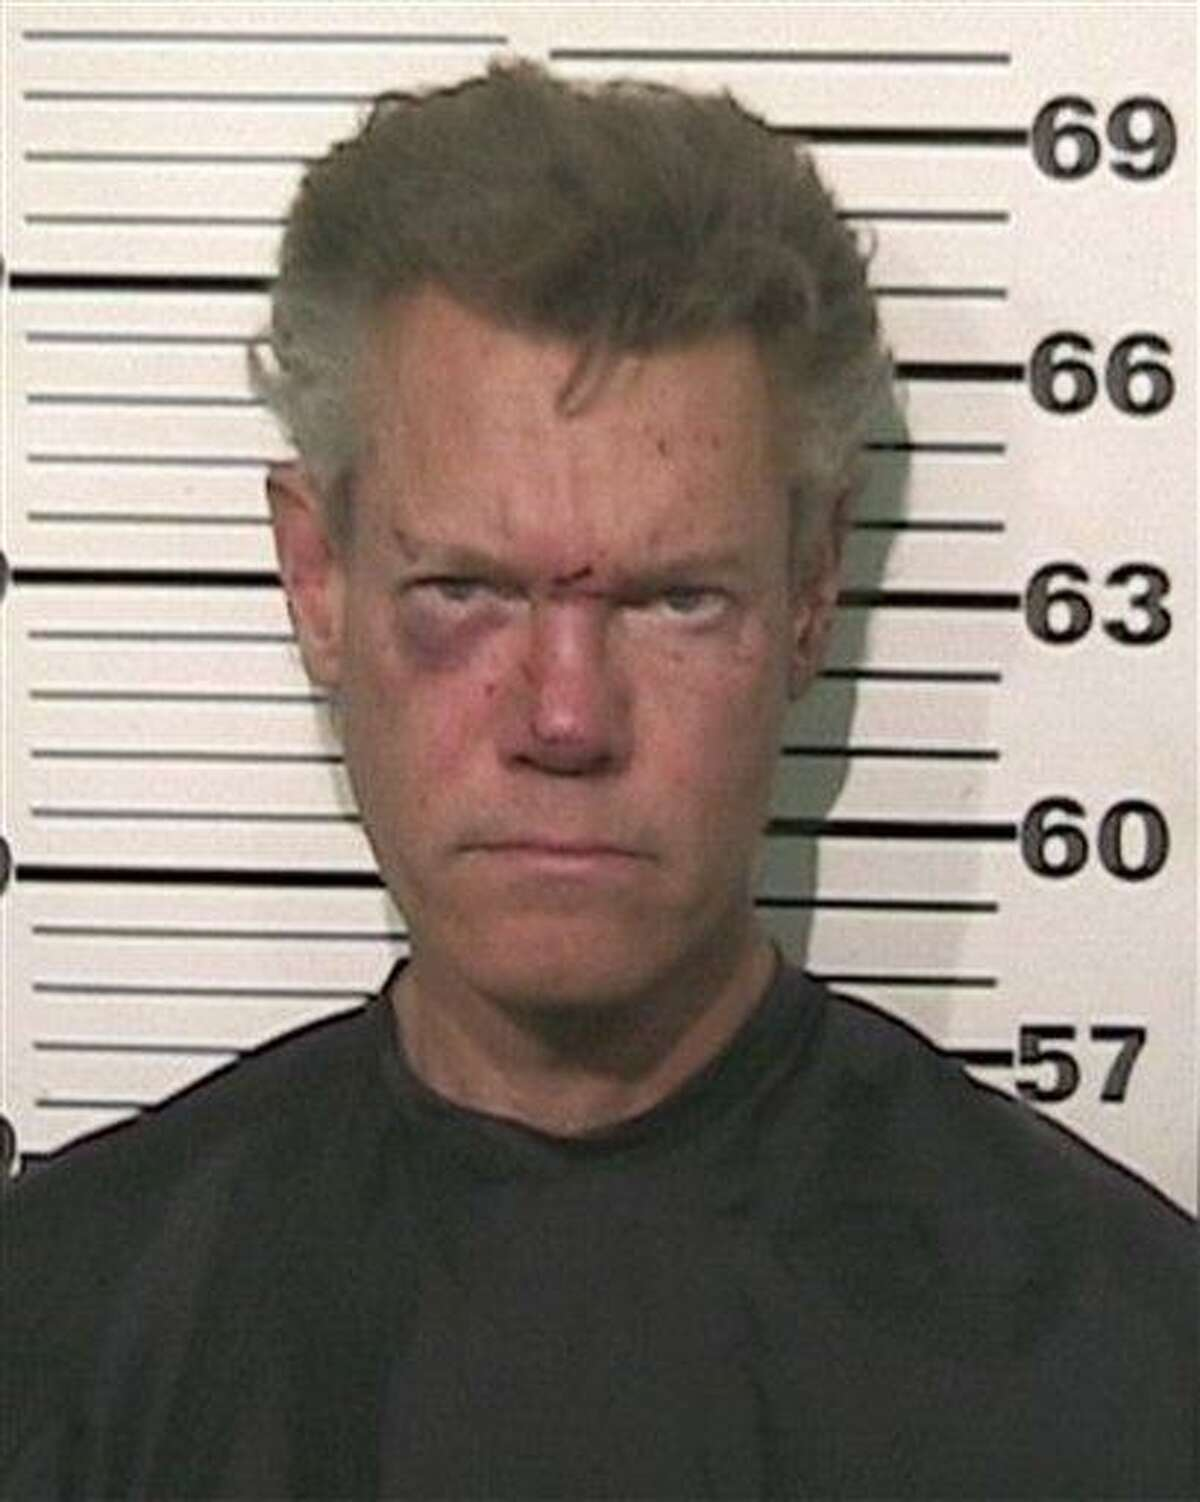 This photo provided by the Grayson County, Texas, Sheriff's Office shows Country singer Randy Travis who has been charged with driving while intoxicated. Associated Press